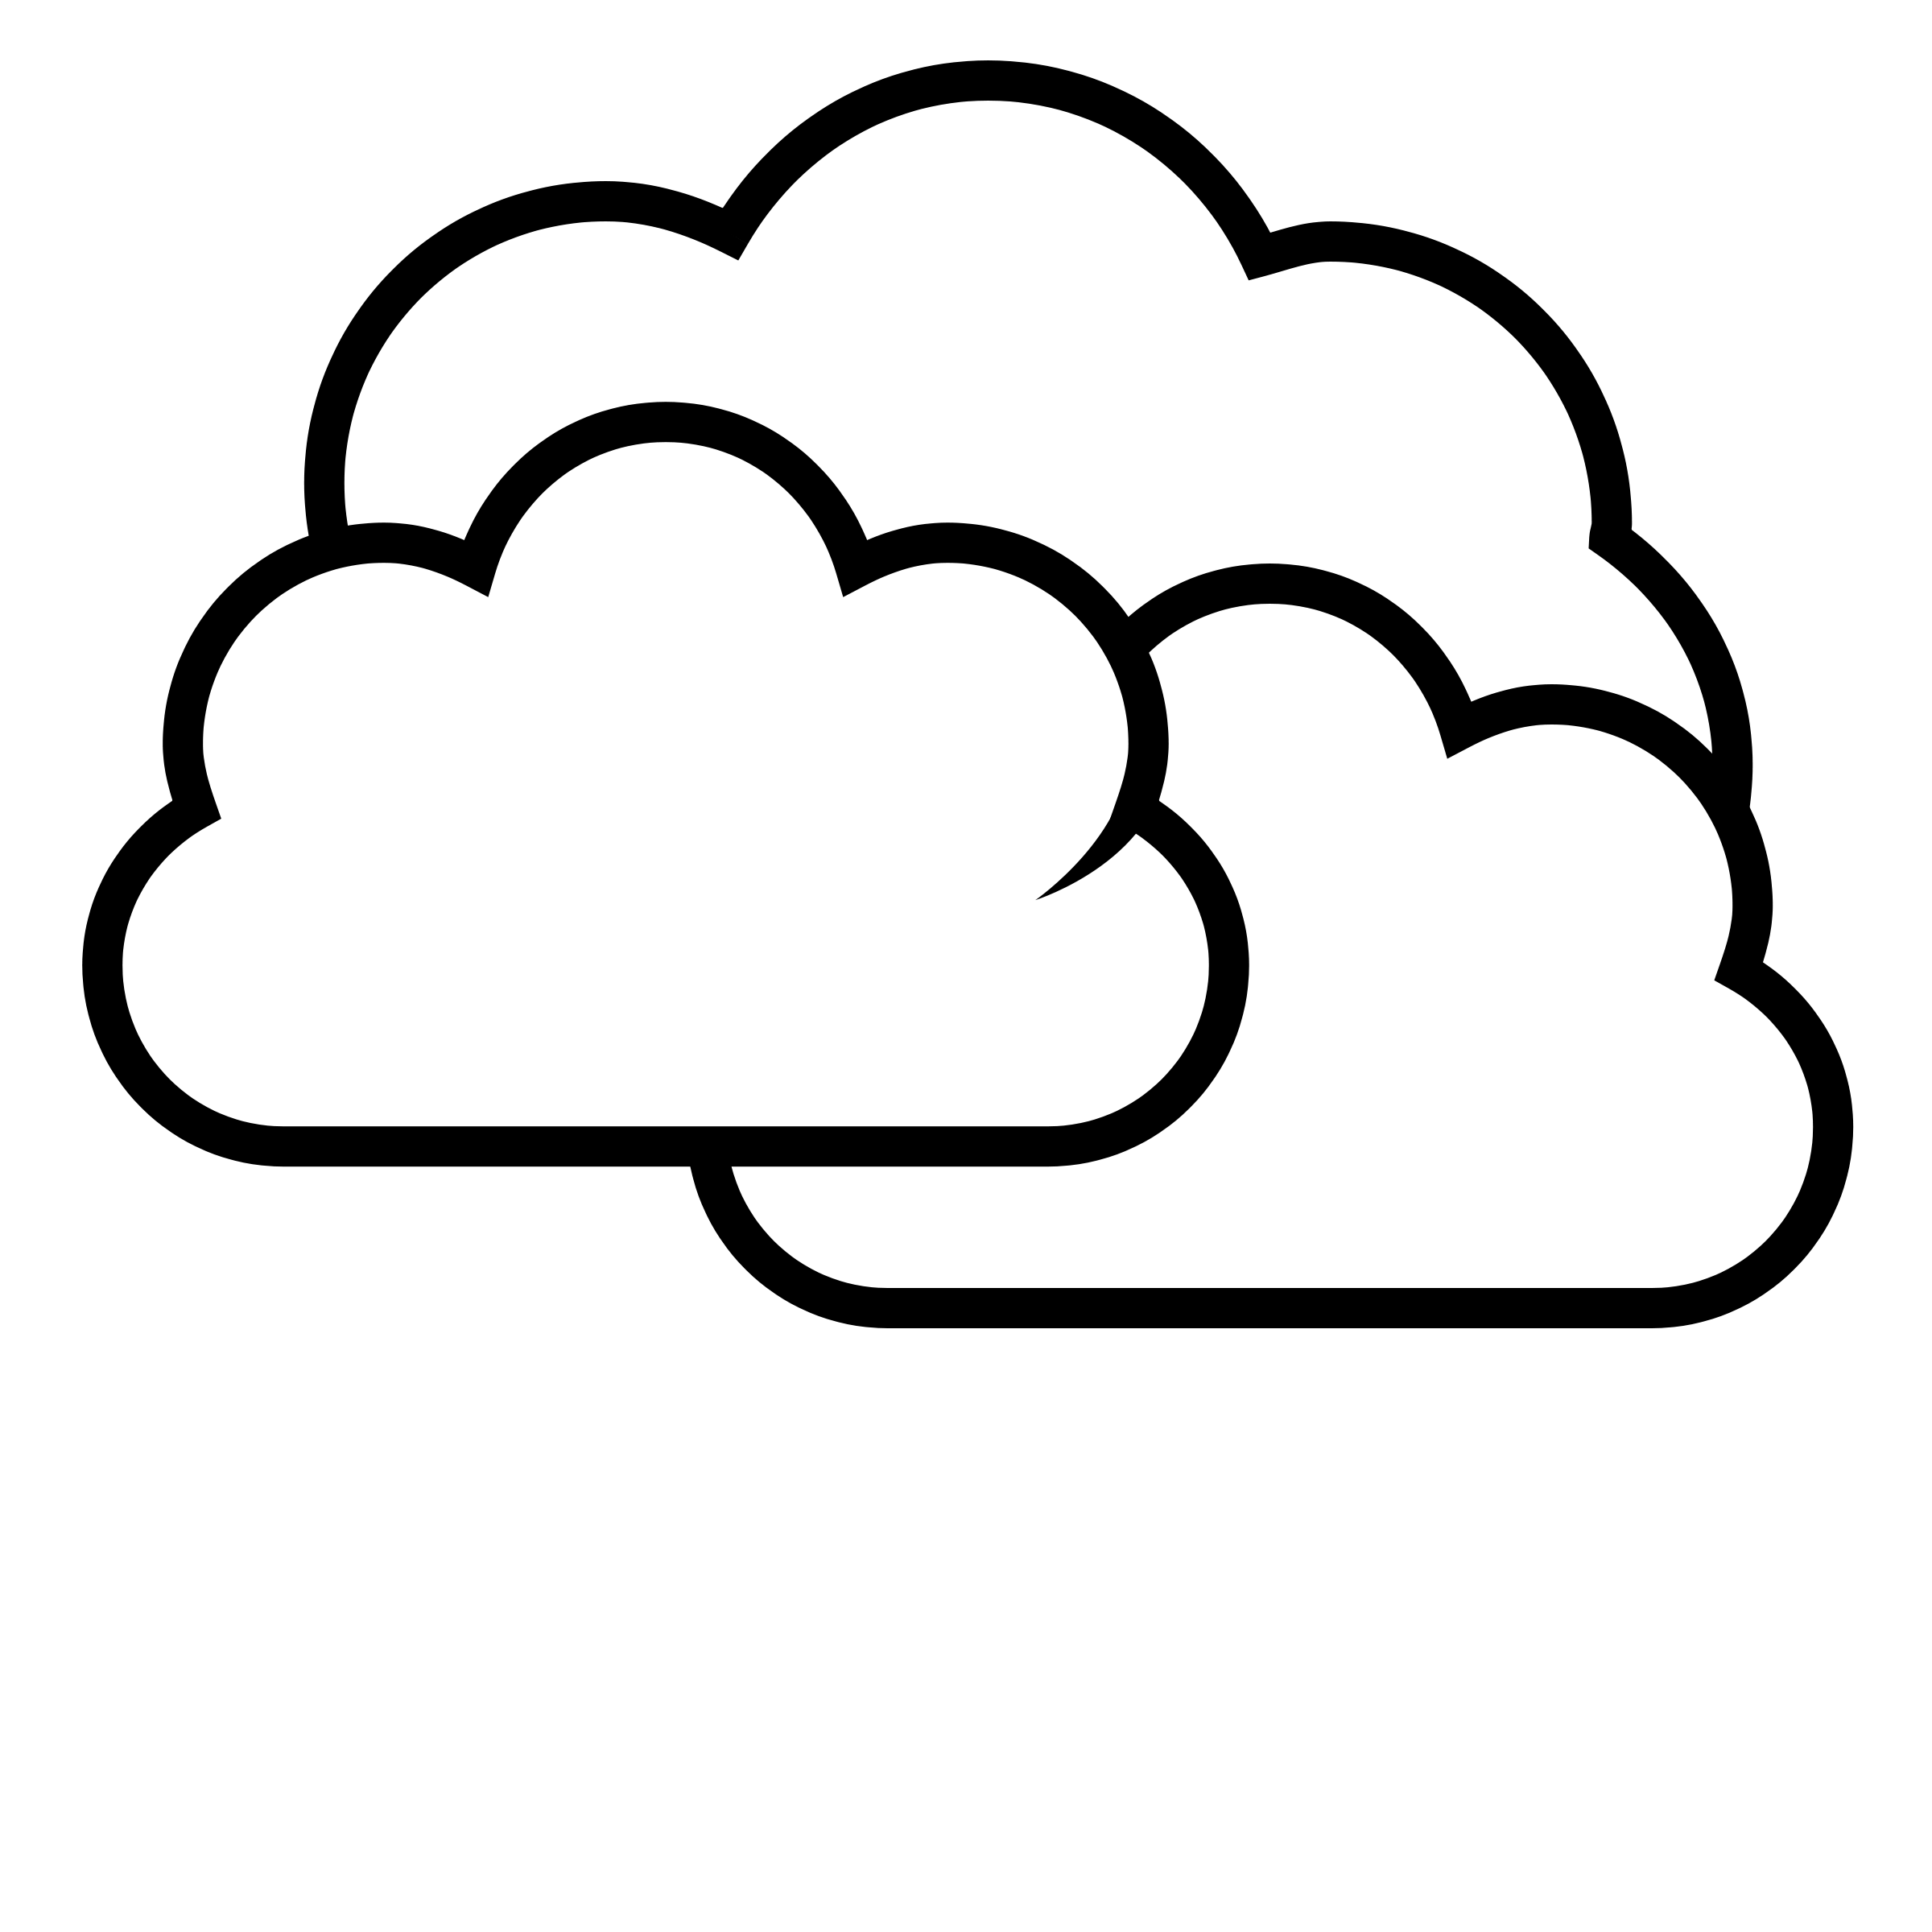 Cloud black n white. Clouds clipart logo